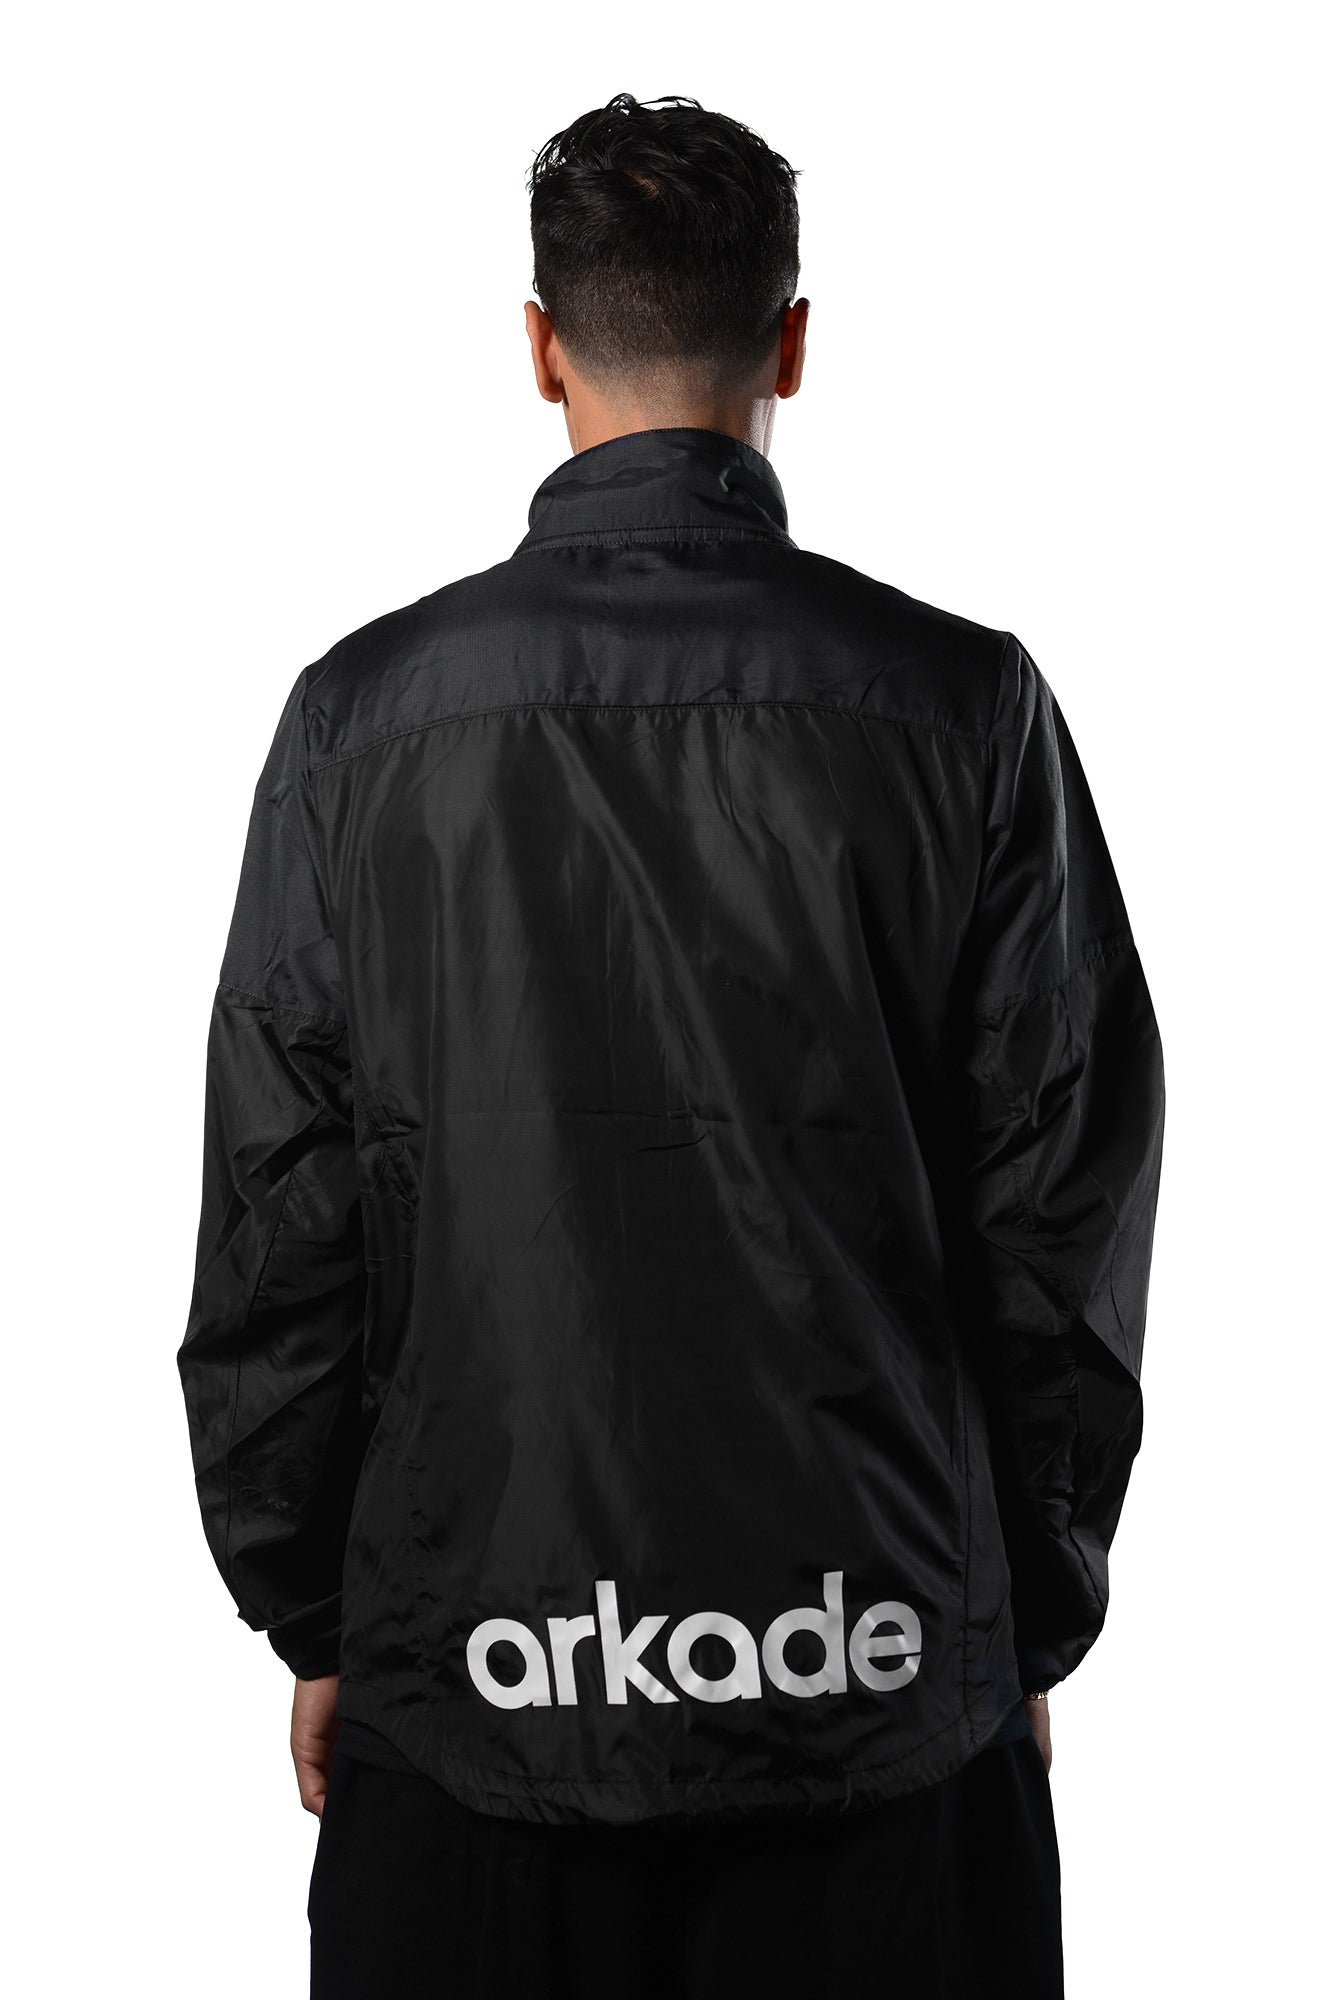 Arkade Windbreaker